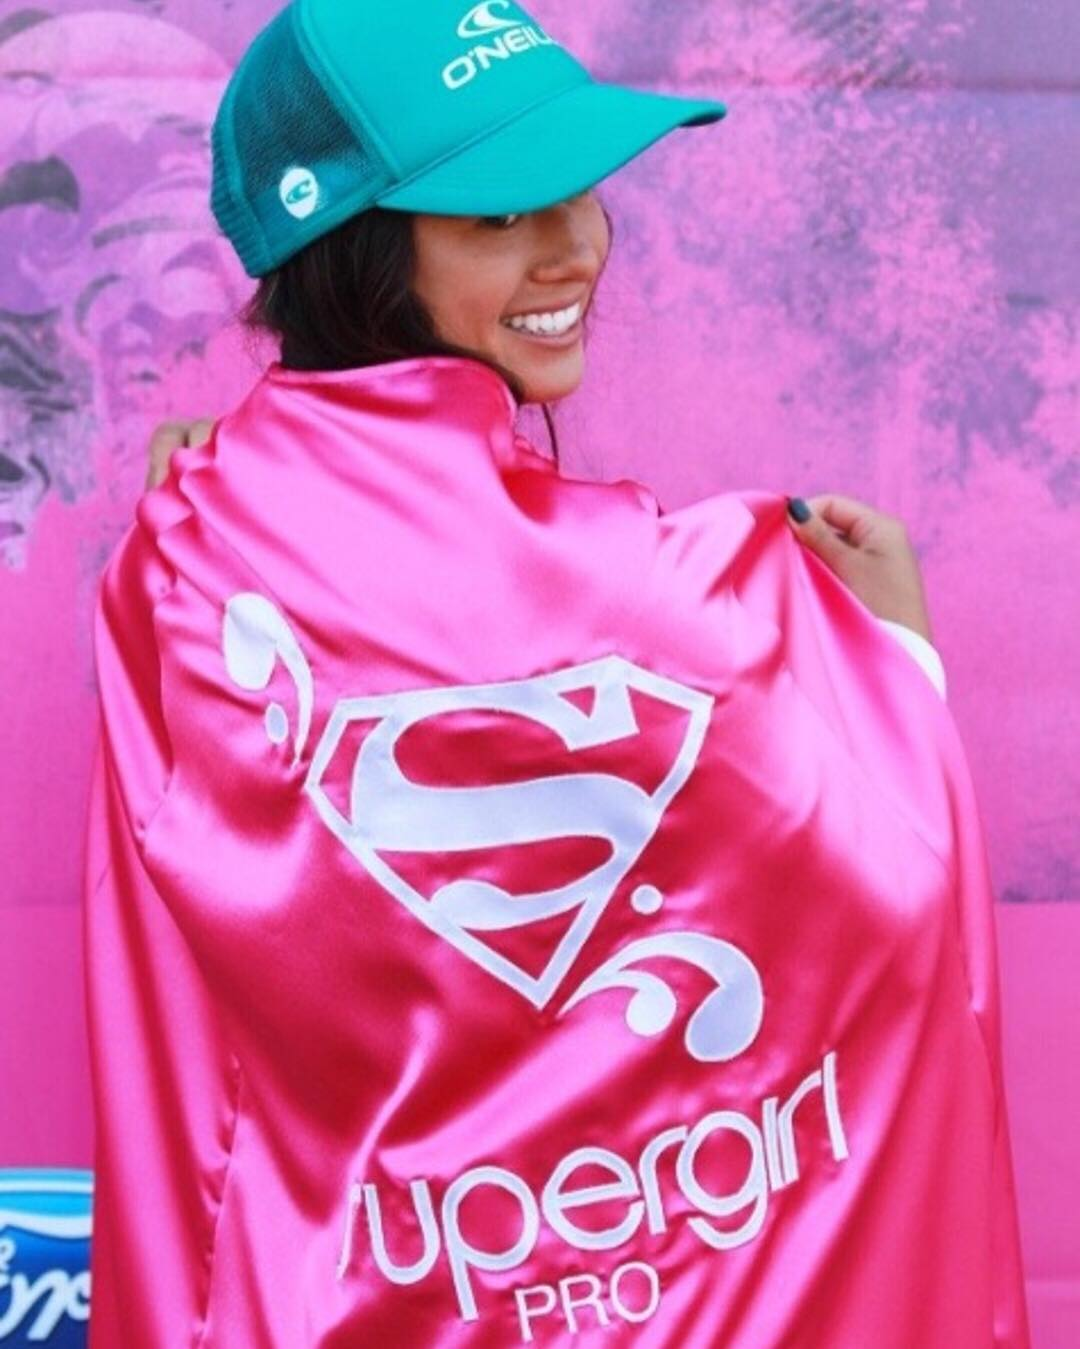 Throwing it back to 2013 when B4BC's own @maliamanuel took home the trophy at the @supergirlpro! Come visit us & the rest of the Supergirl Squad this weekend at the Oceanside Pier! #paulmitchellsupergirlpro #tbt